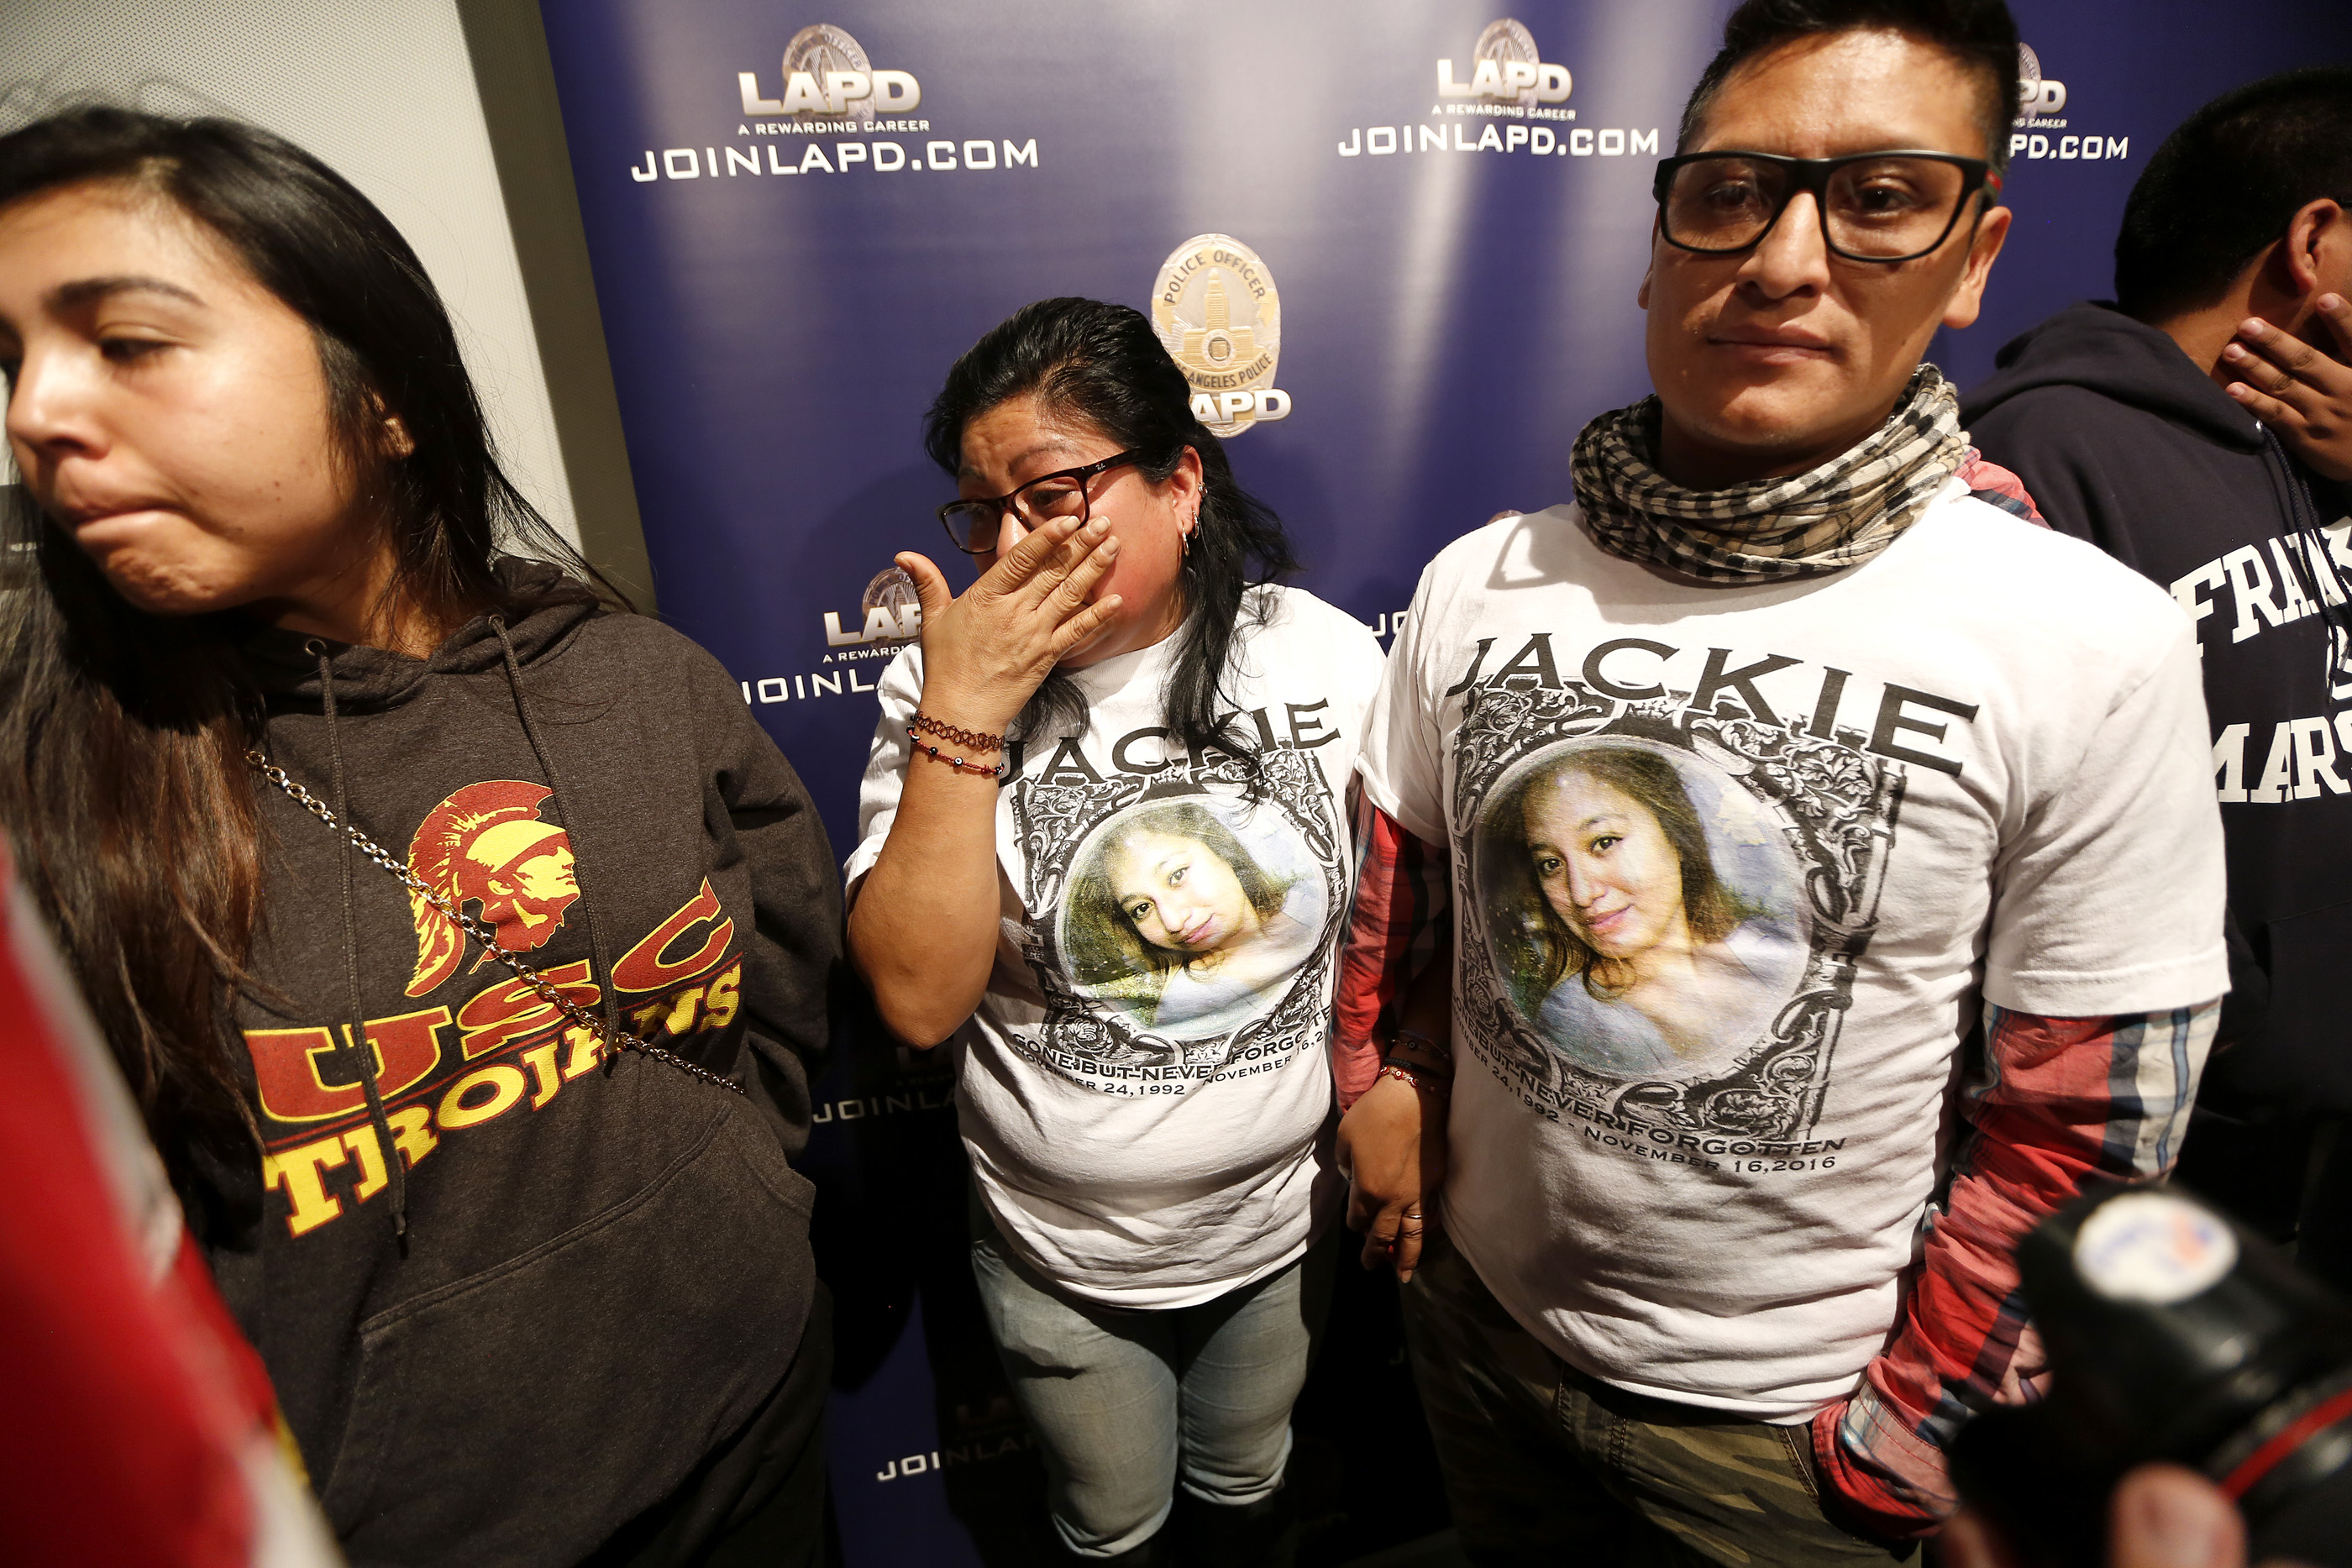 01/13/17/ LOS ANGELES/Family friend Rhina Calderon comforts Sandra Hernandez with her husband Ruben Vicente after a press conference, where Councilmember Jose Huizar and LAPD officials announced a $50,000 reward on behalf of 24 year old Jacqueline Hernandez, who was struck and killed onÊNov. 7thÊin Downtown. On November 7, 2016, aroundÊ6:08 p.m., 24 year old Jacqueline Hernandez was crossing 12thStreet, near Paloma Street when she was fatally struck by a hit and run driver.ÊÊ (Photo Aurelia Ventura/ La Opinion)